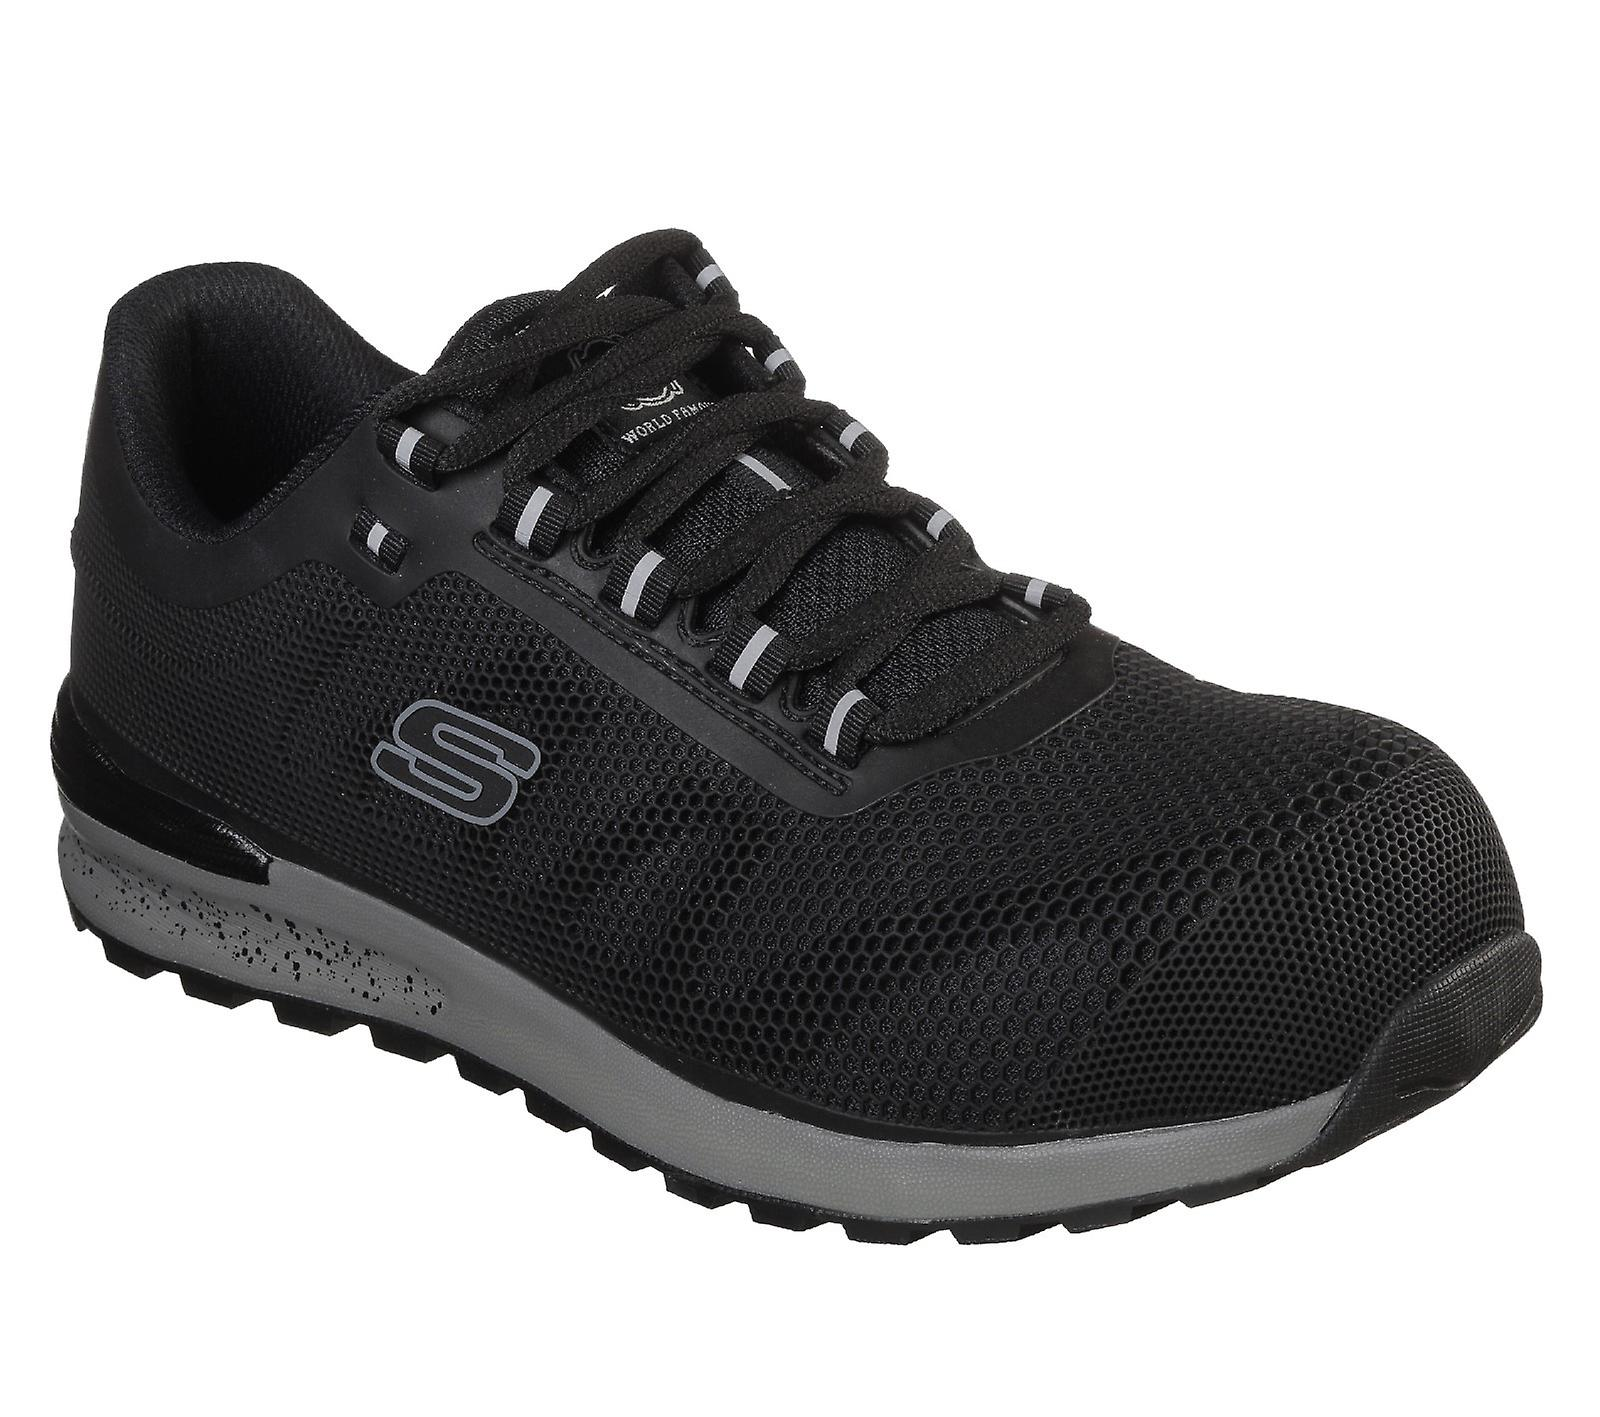 skechers running sko without laces